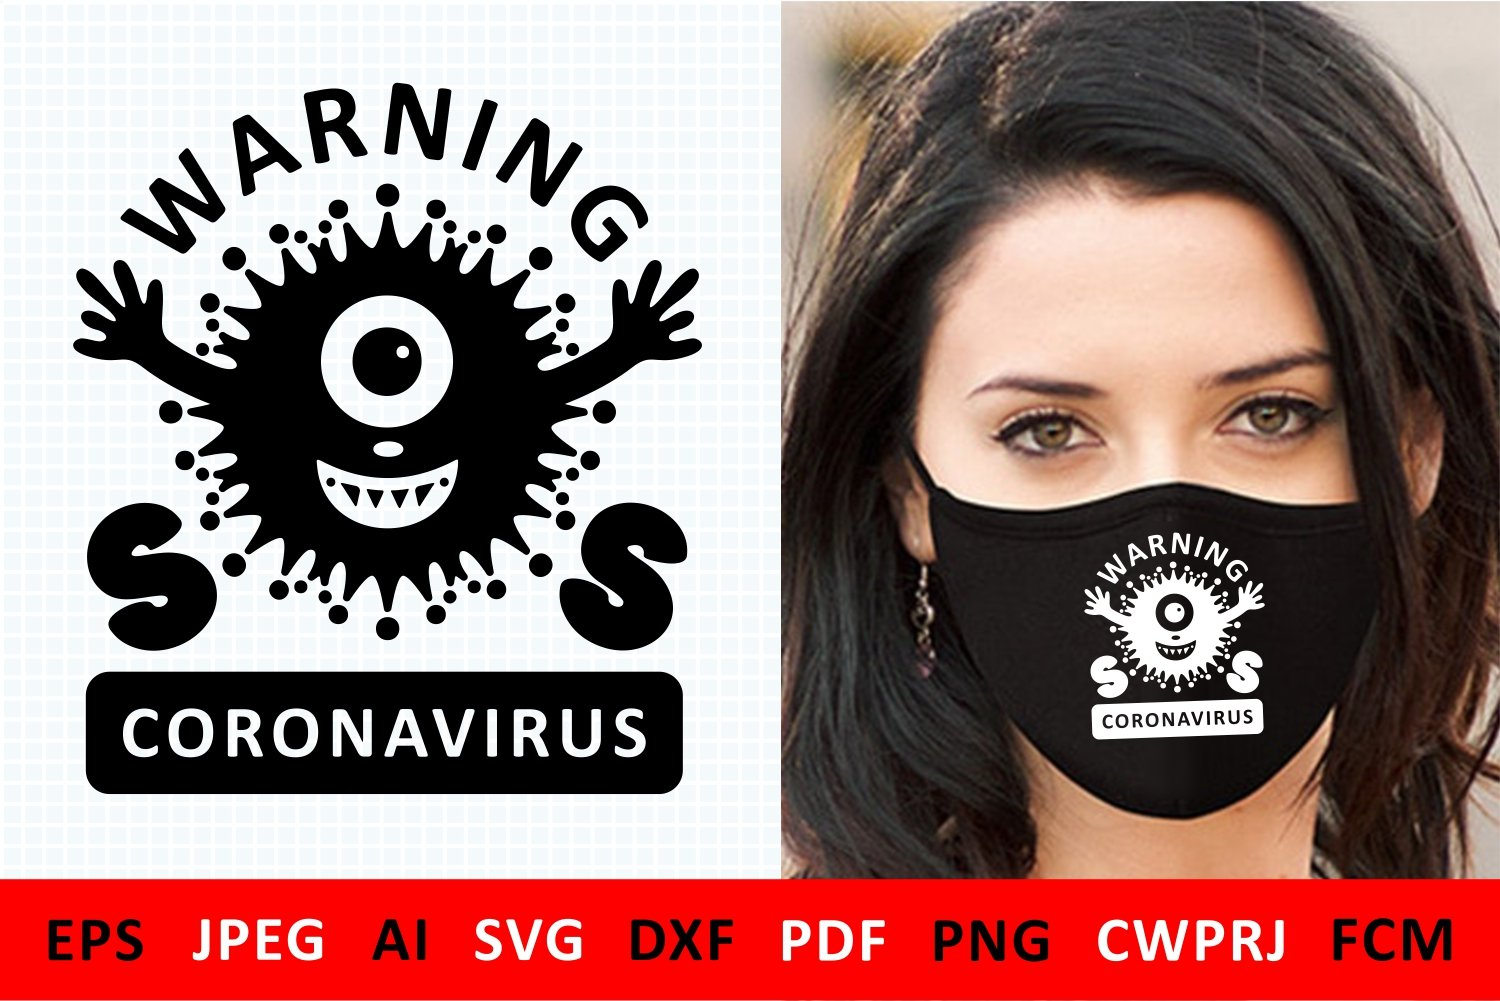 Covid 19 Coronavirus 2019 Ncov Svg Pre Designed Photoshop Graphics Creative Market